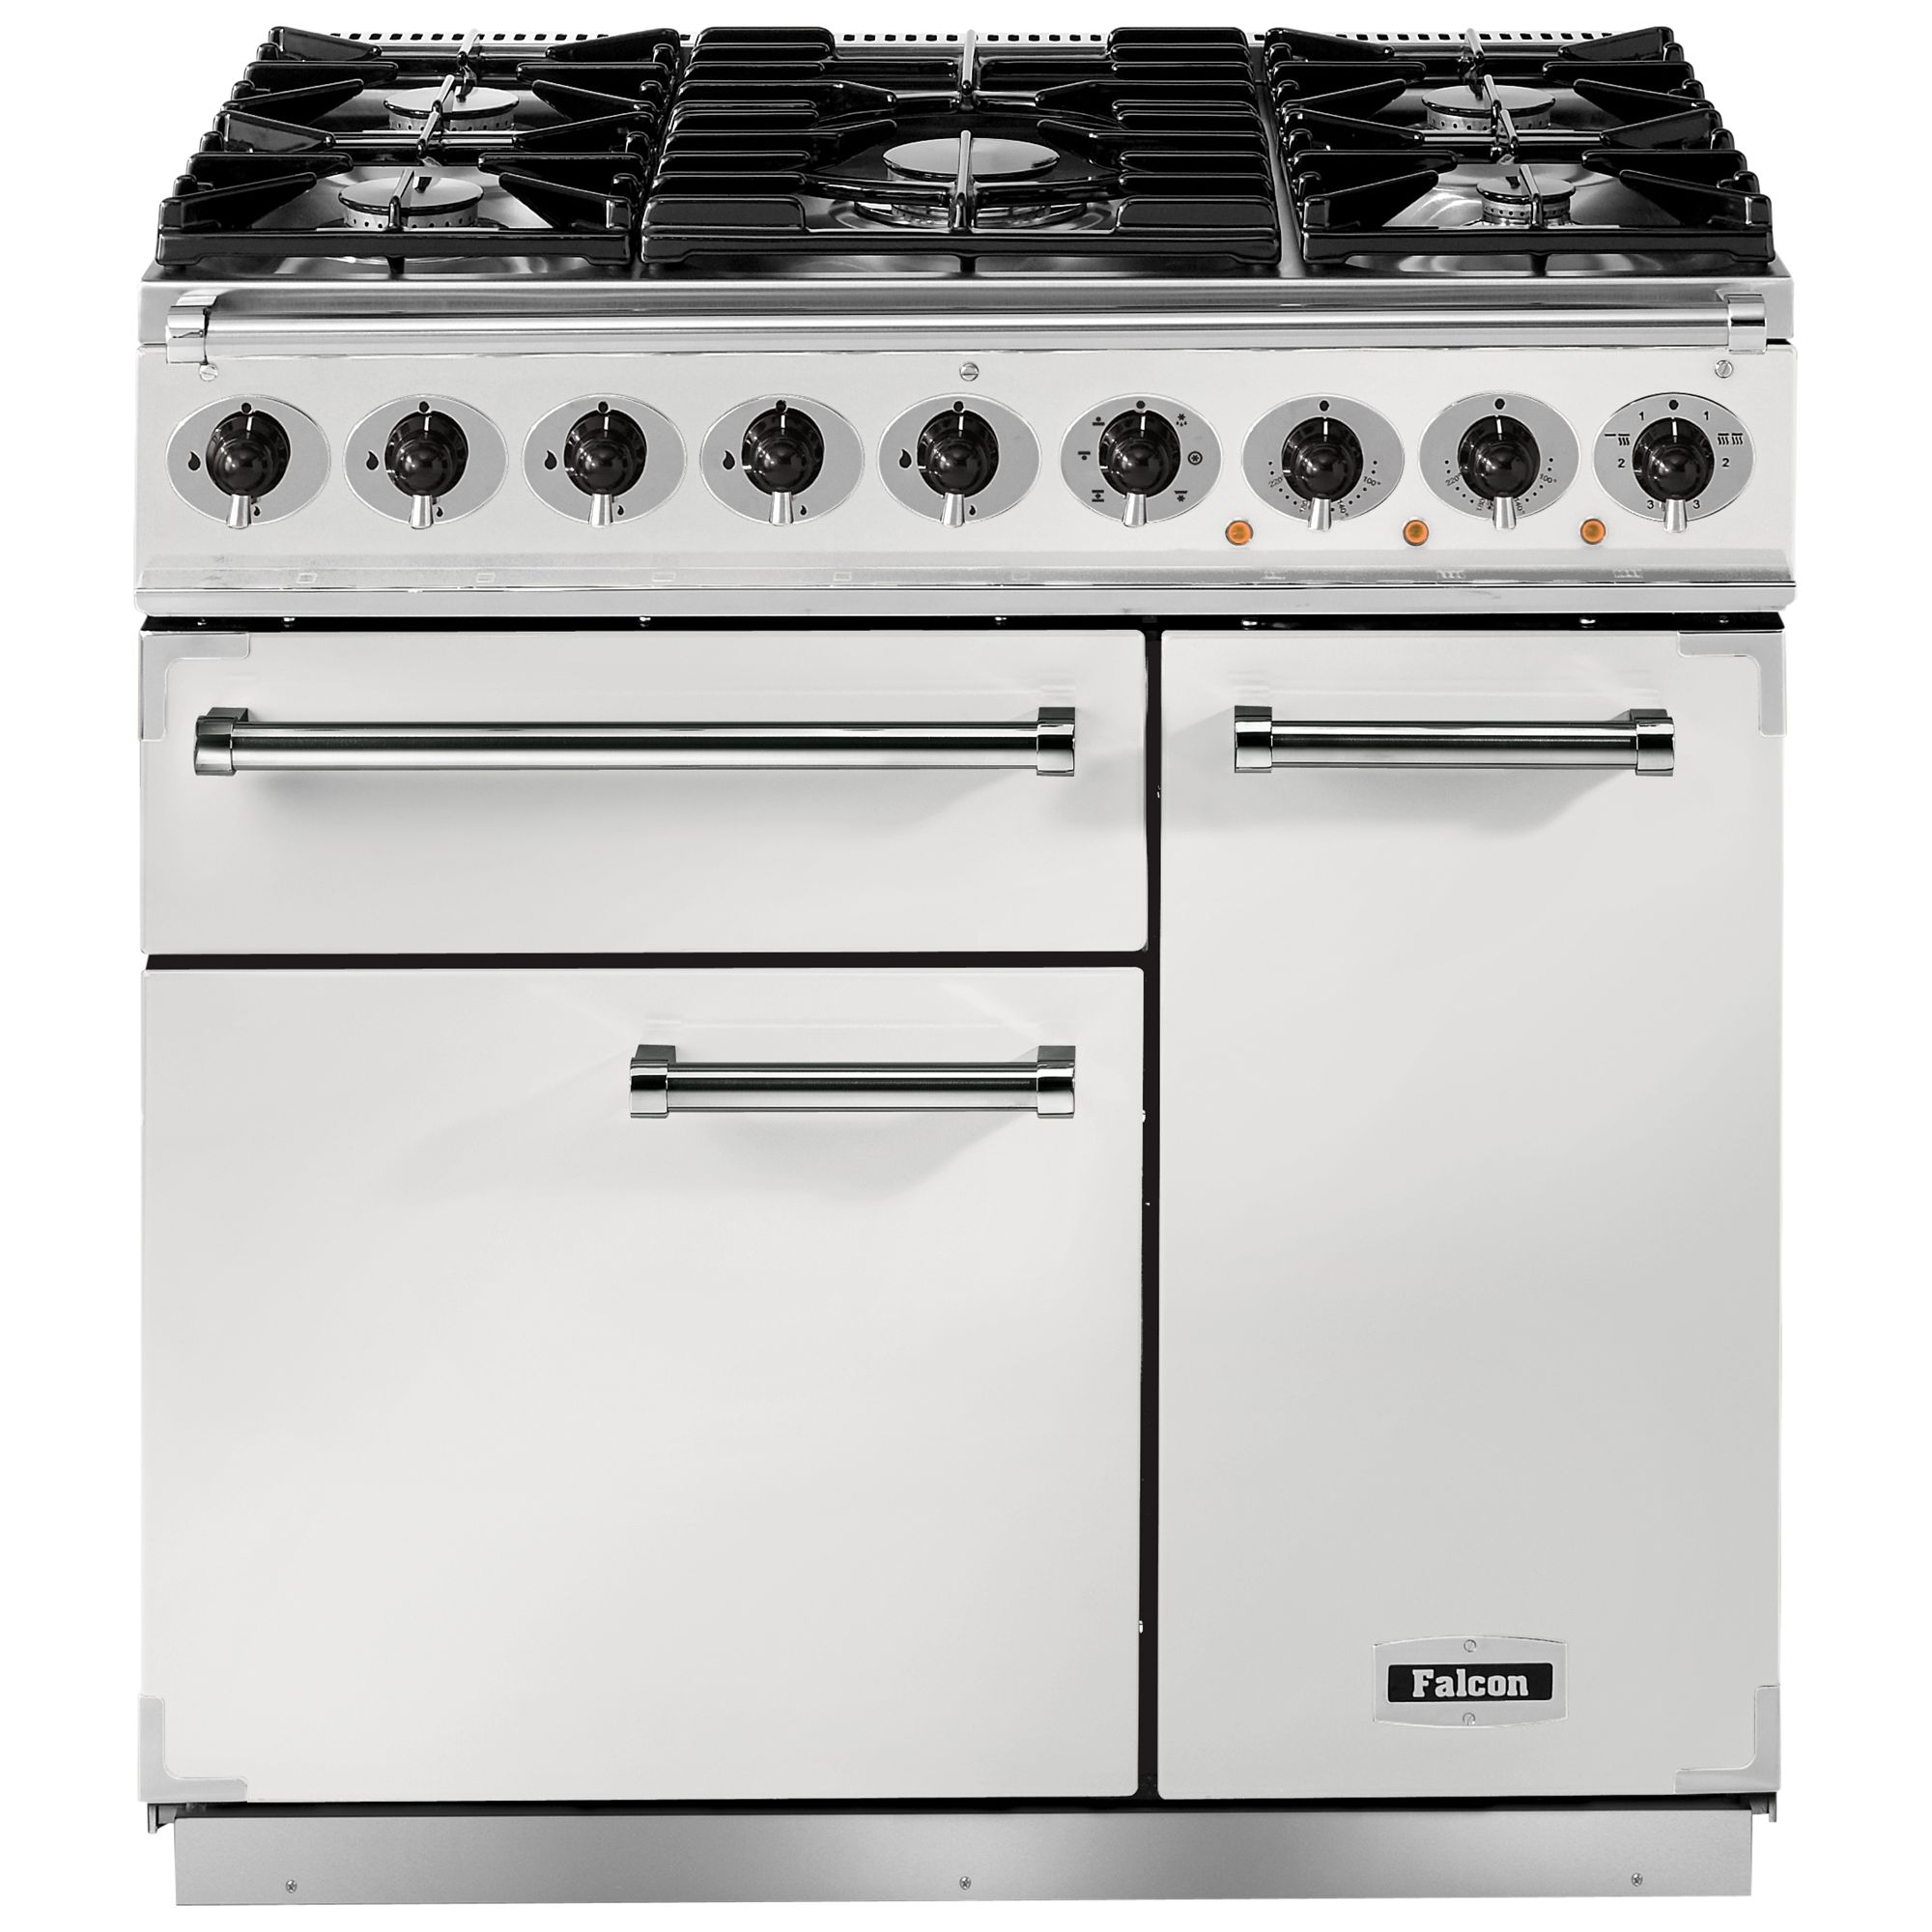 buy cheap 900 range cooker compare cookers ovens. Black Bedroom Furniture Sets. Home Design Ideas